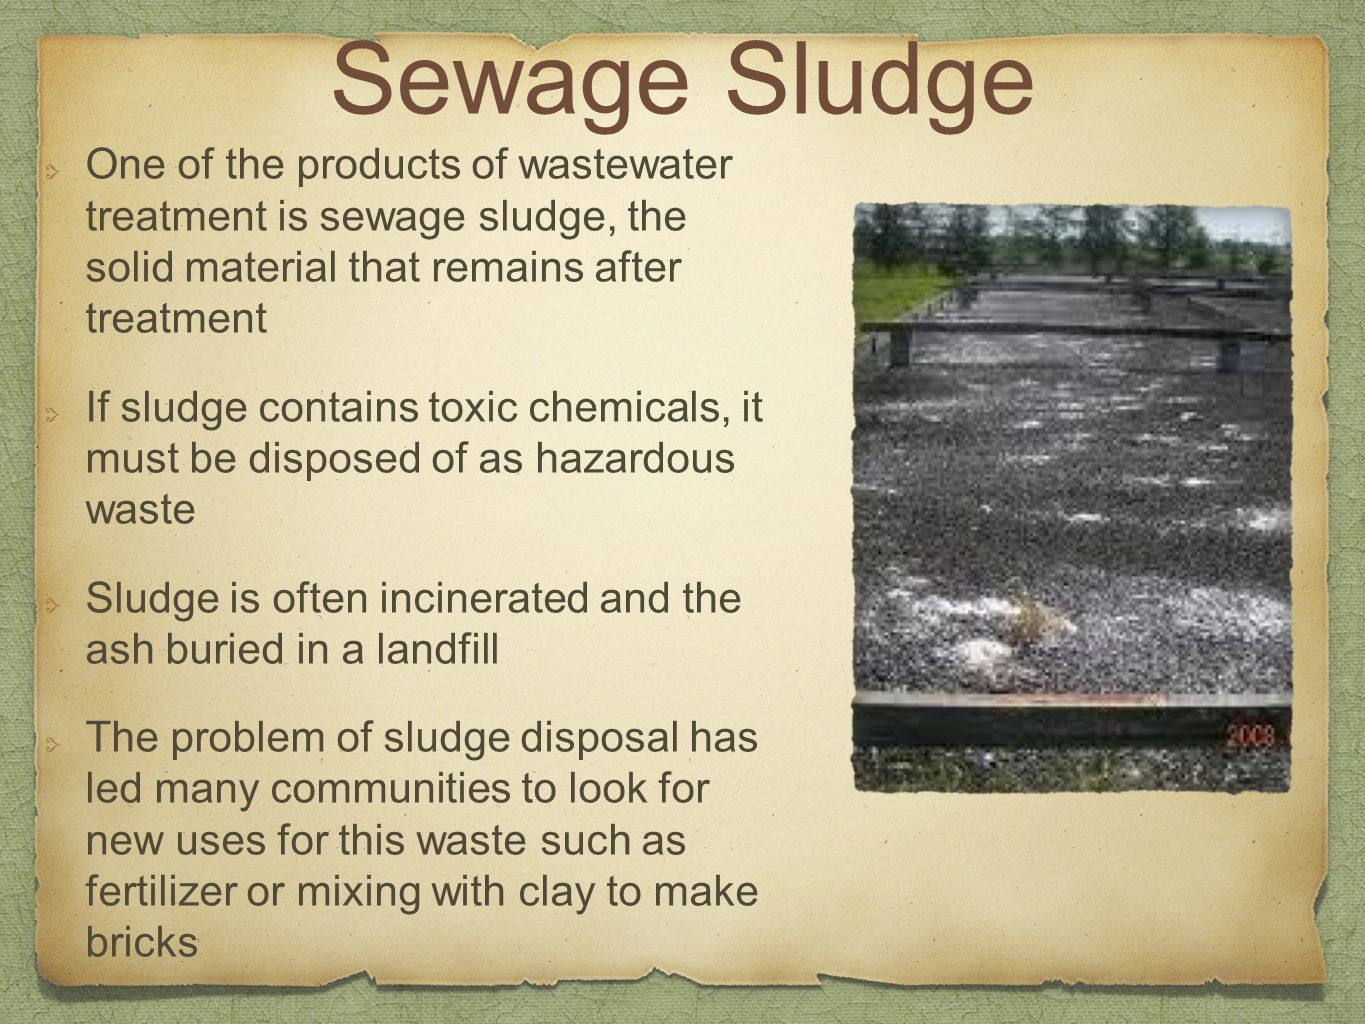 Sewage Sludge One of the products of wastewater treatment is sewage sludge, the solid material that remains after treatment.